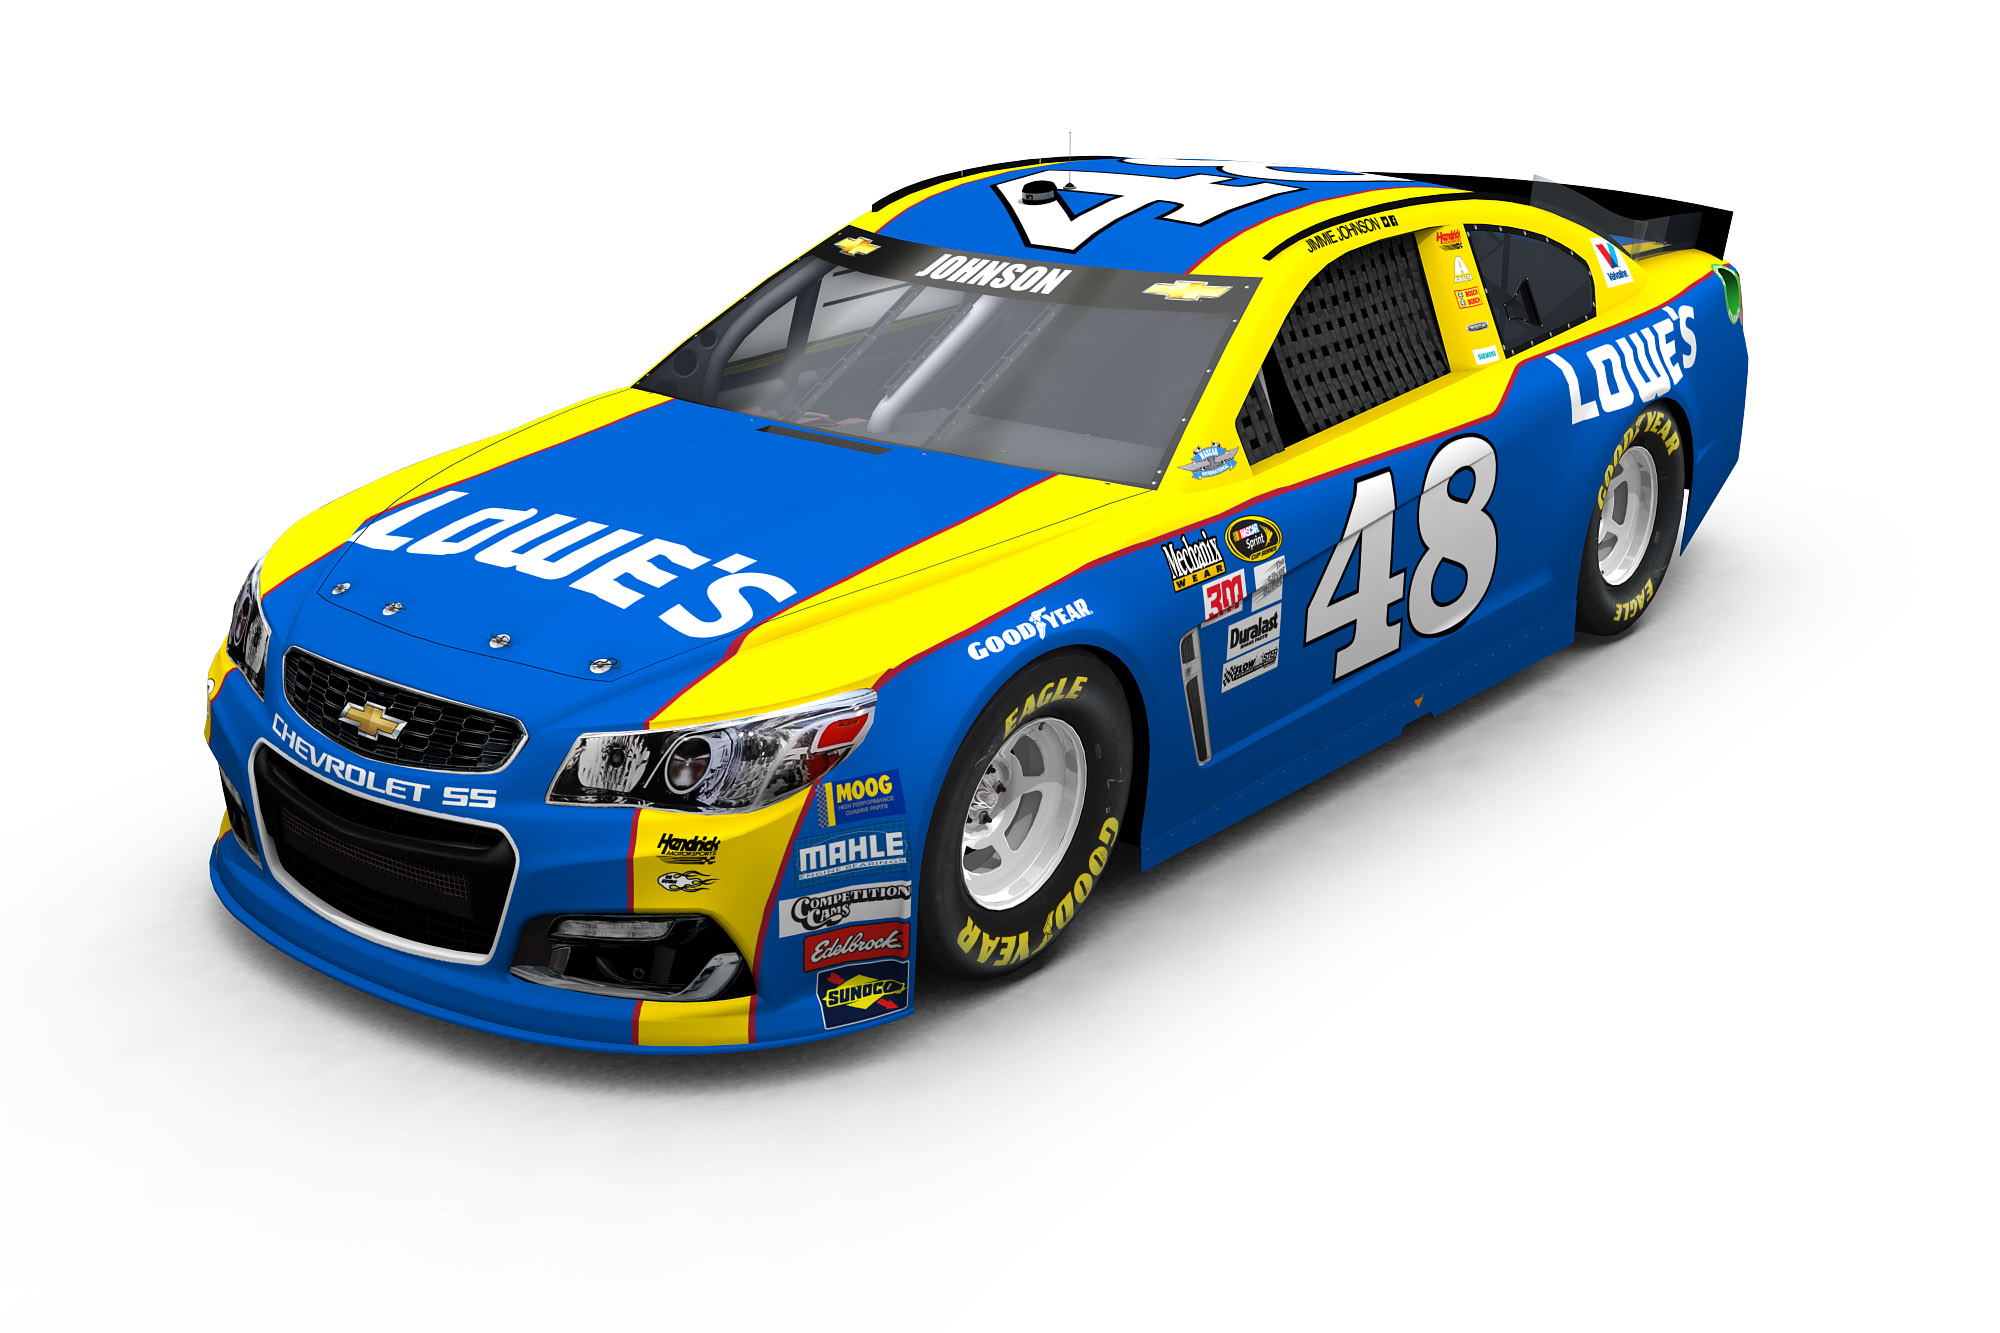 Knaus unveils No. 48 Lowe's throwback scheme for ...